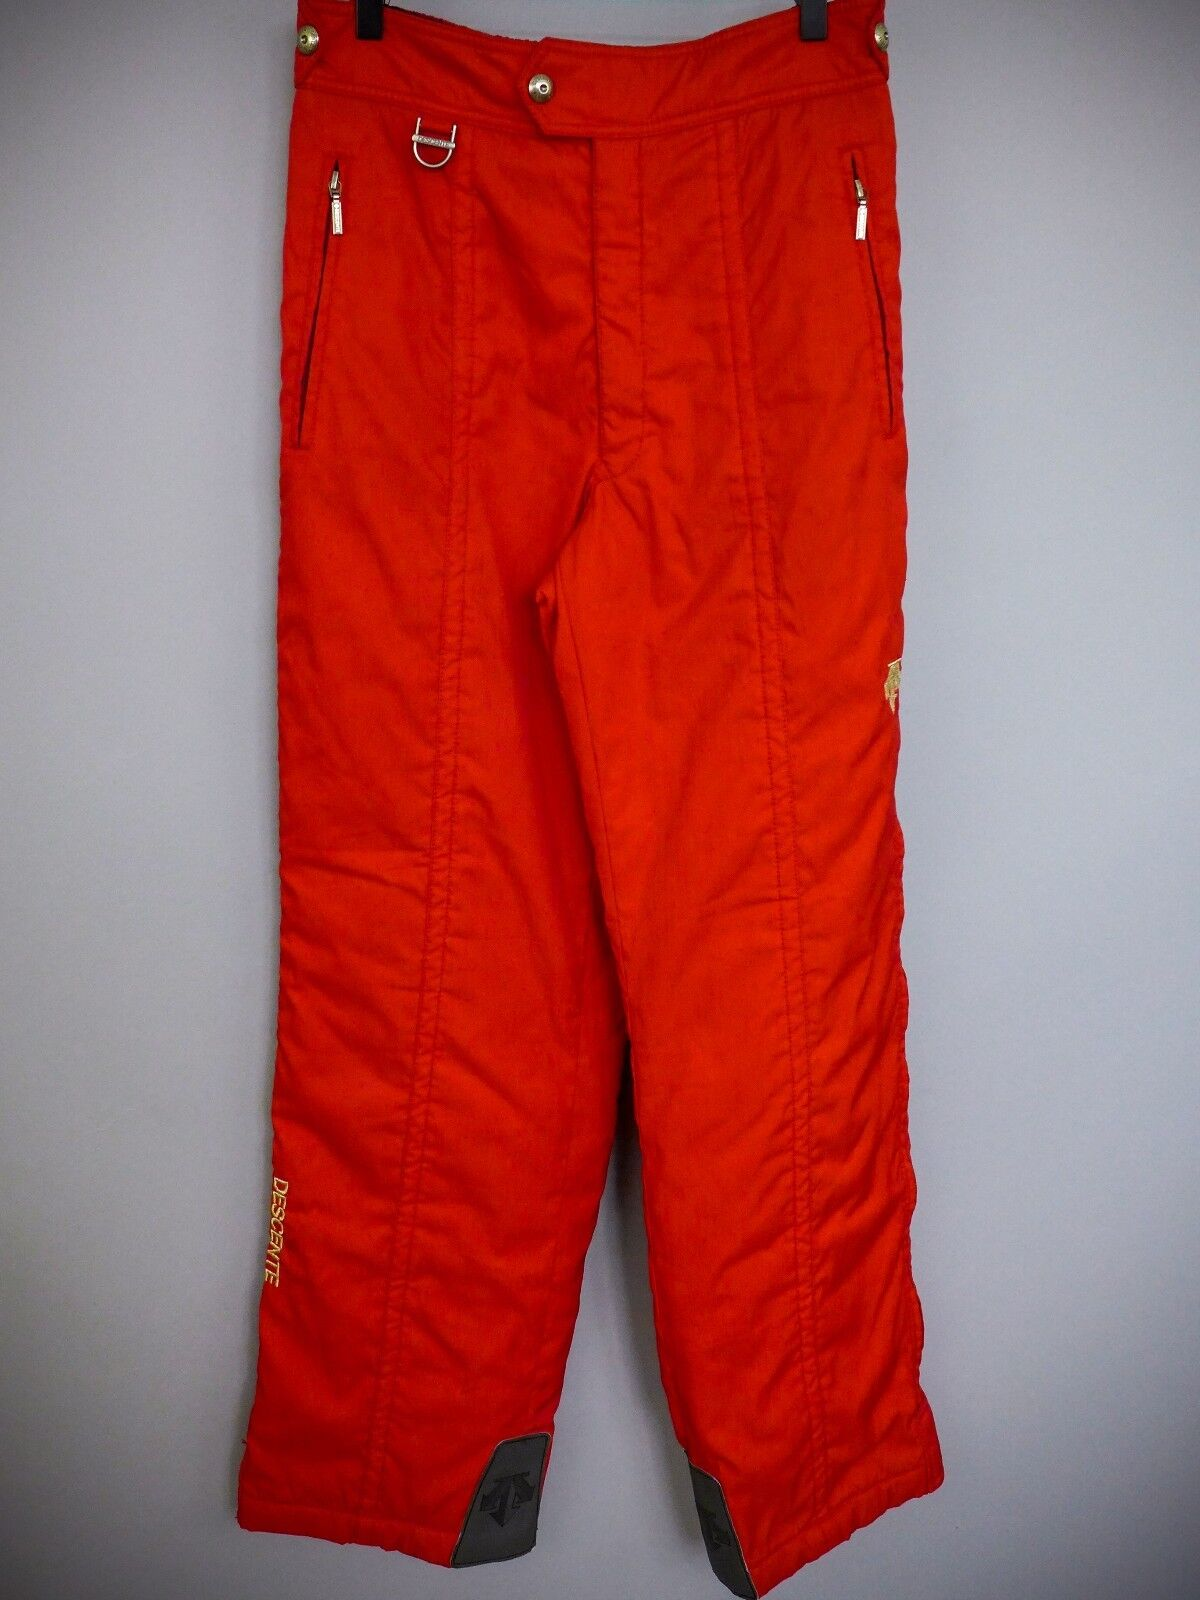 XII368 Men Descente Skiing  Snowboarding Trousers 44 XS W30 L32  free shipping & exchanges.